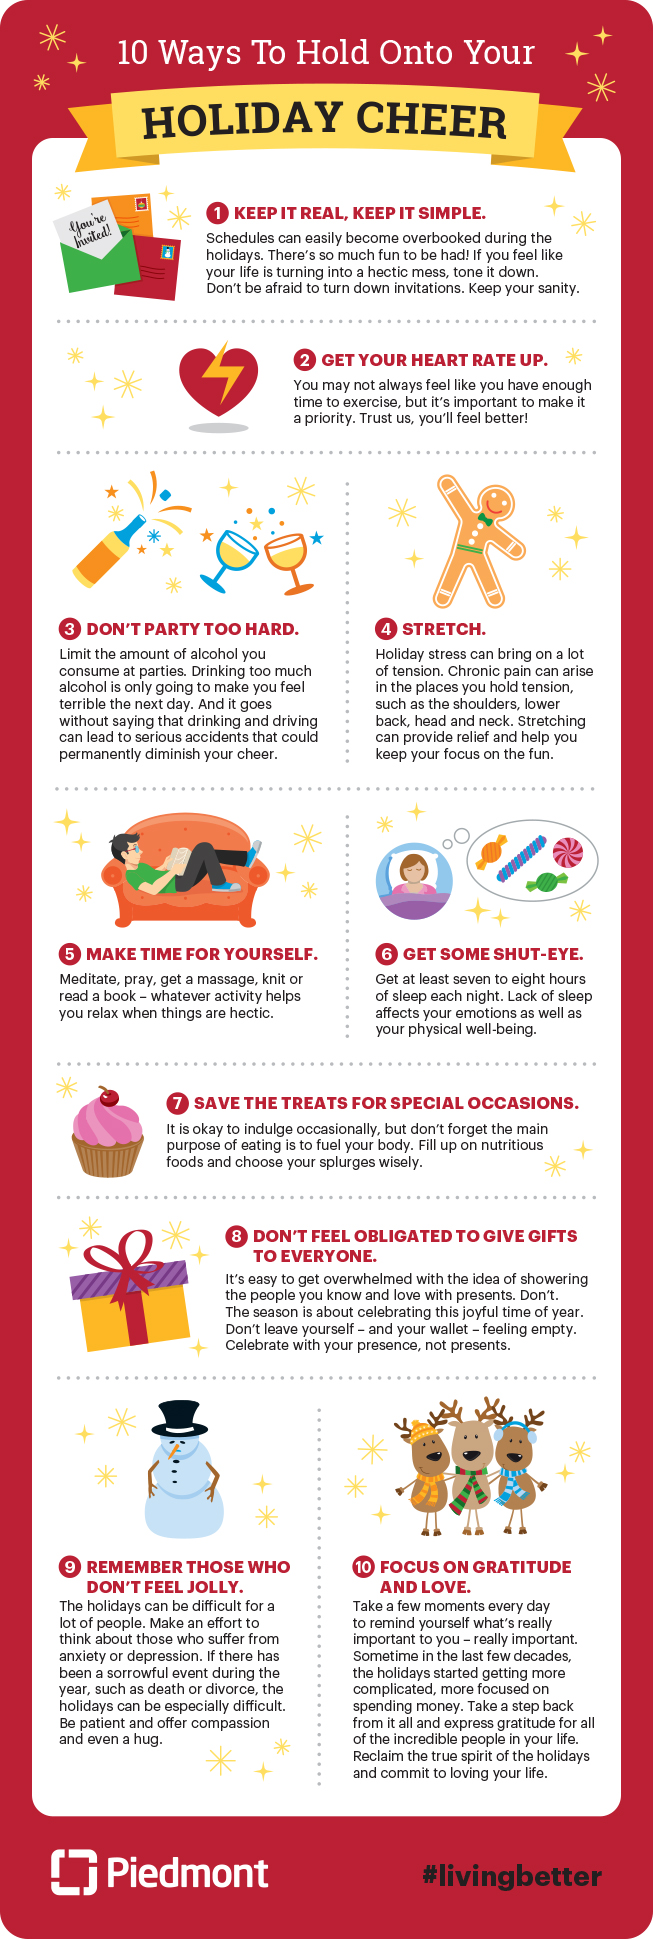 10 ways to hold onto your holiday cheer